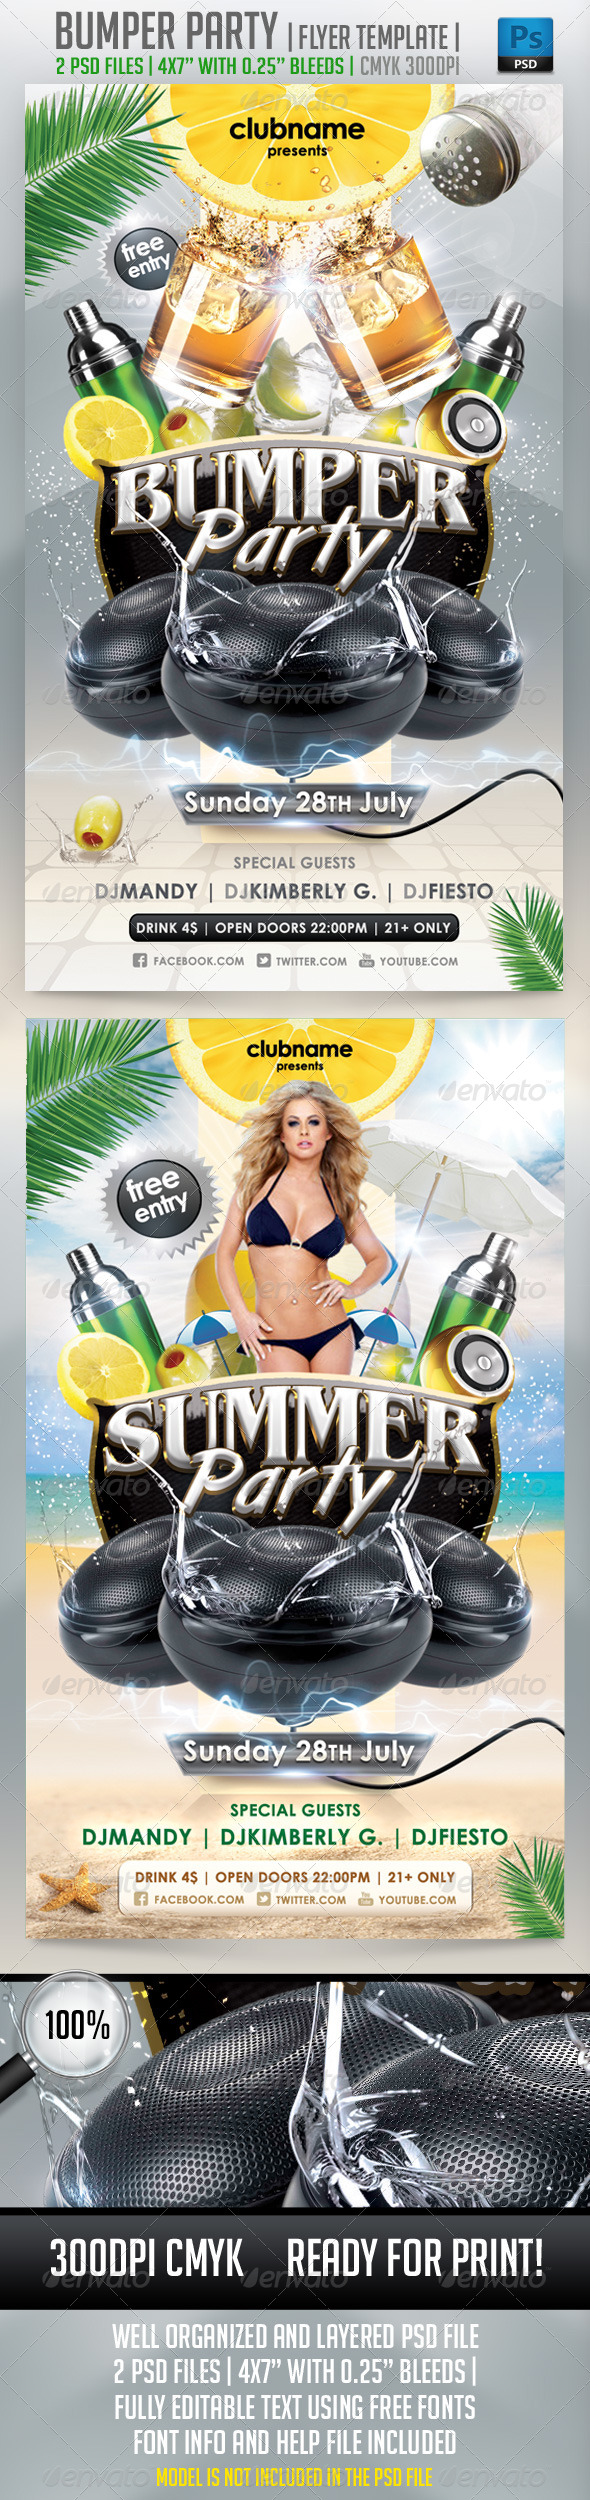 Bumper Party Flyer Template - Clubs & Parties Events